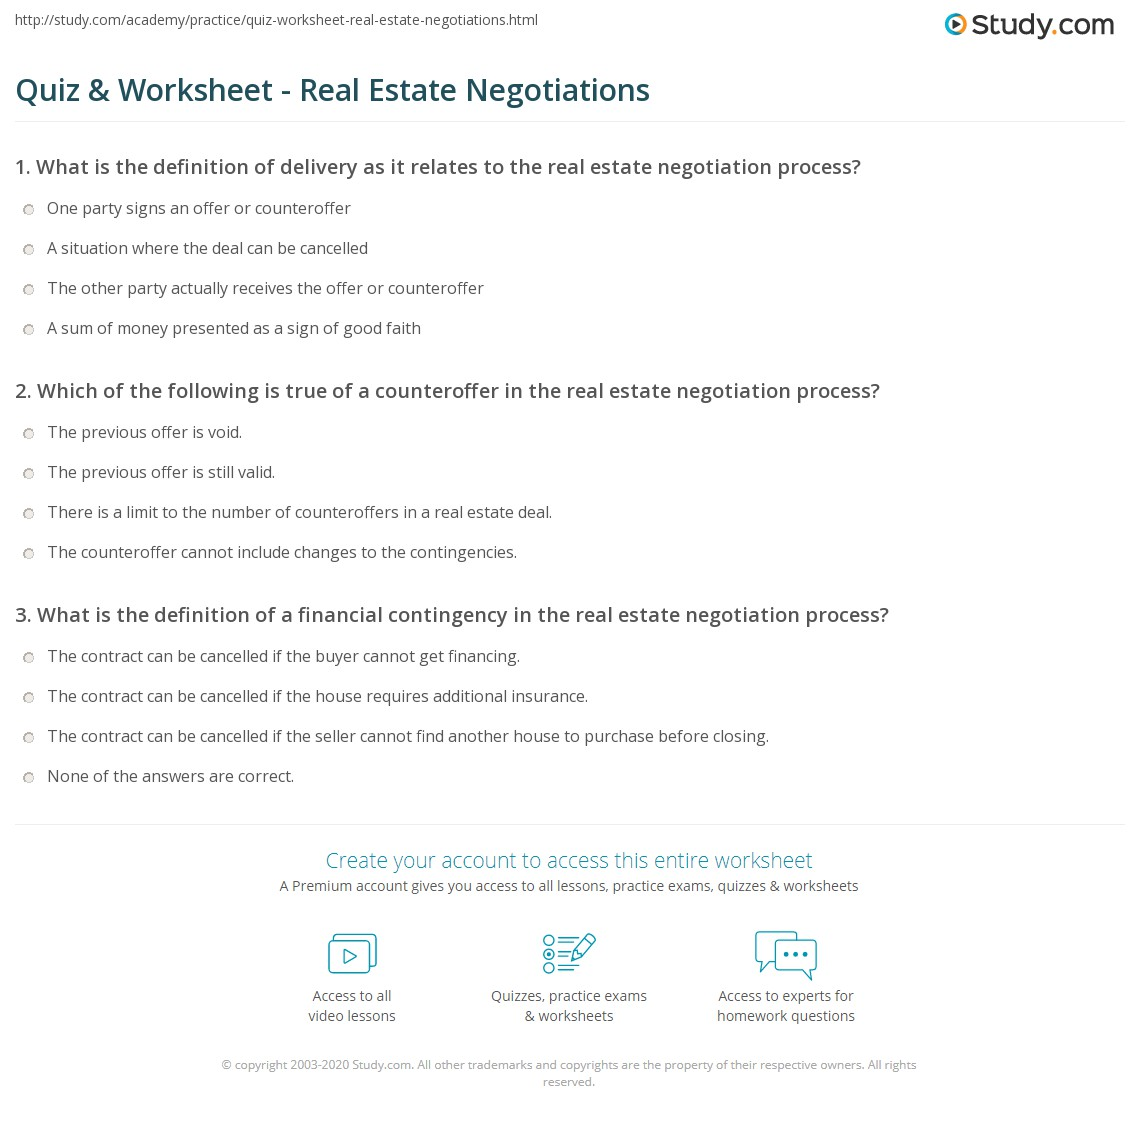 quiz worksheet real estate negotiations. Black Bedroom Furniture Sets. Home Design Ideas